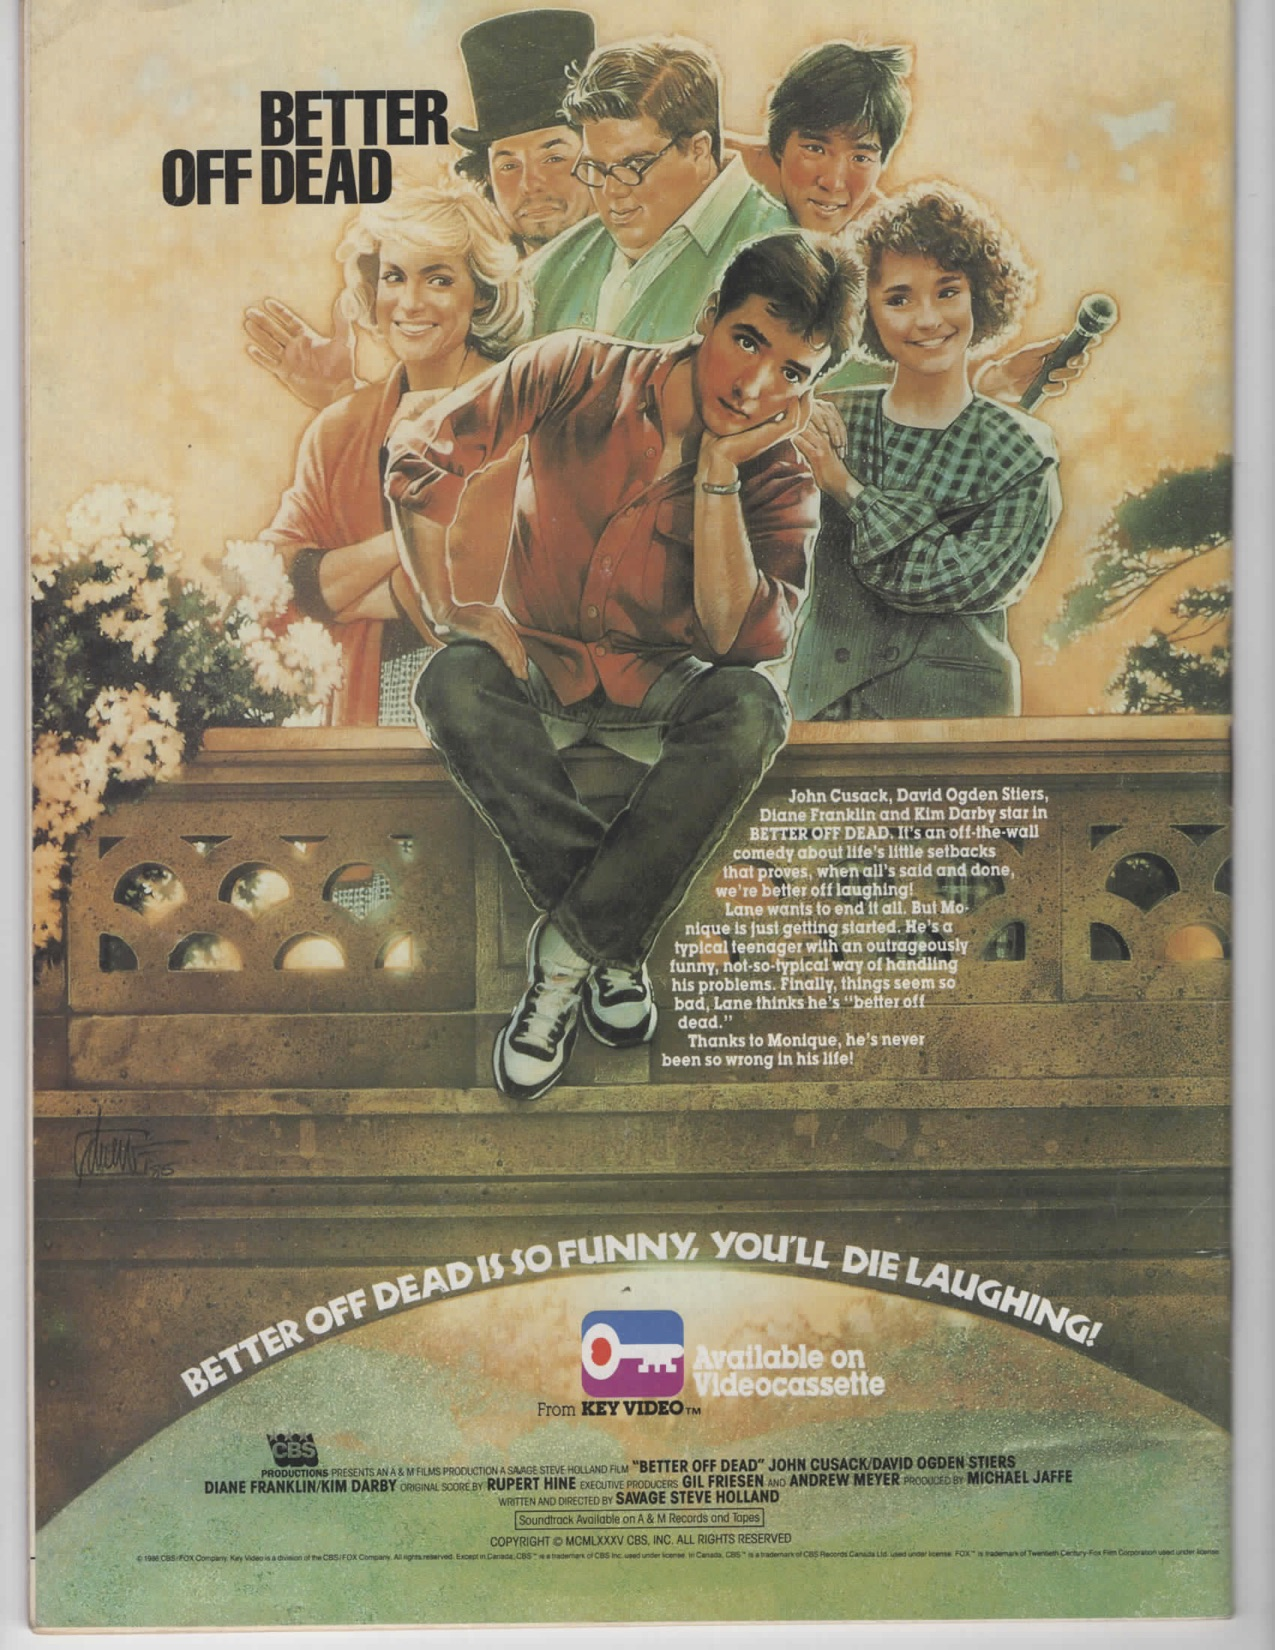 better off dead john cusack classic 1980s comedy comedies